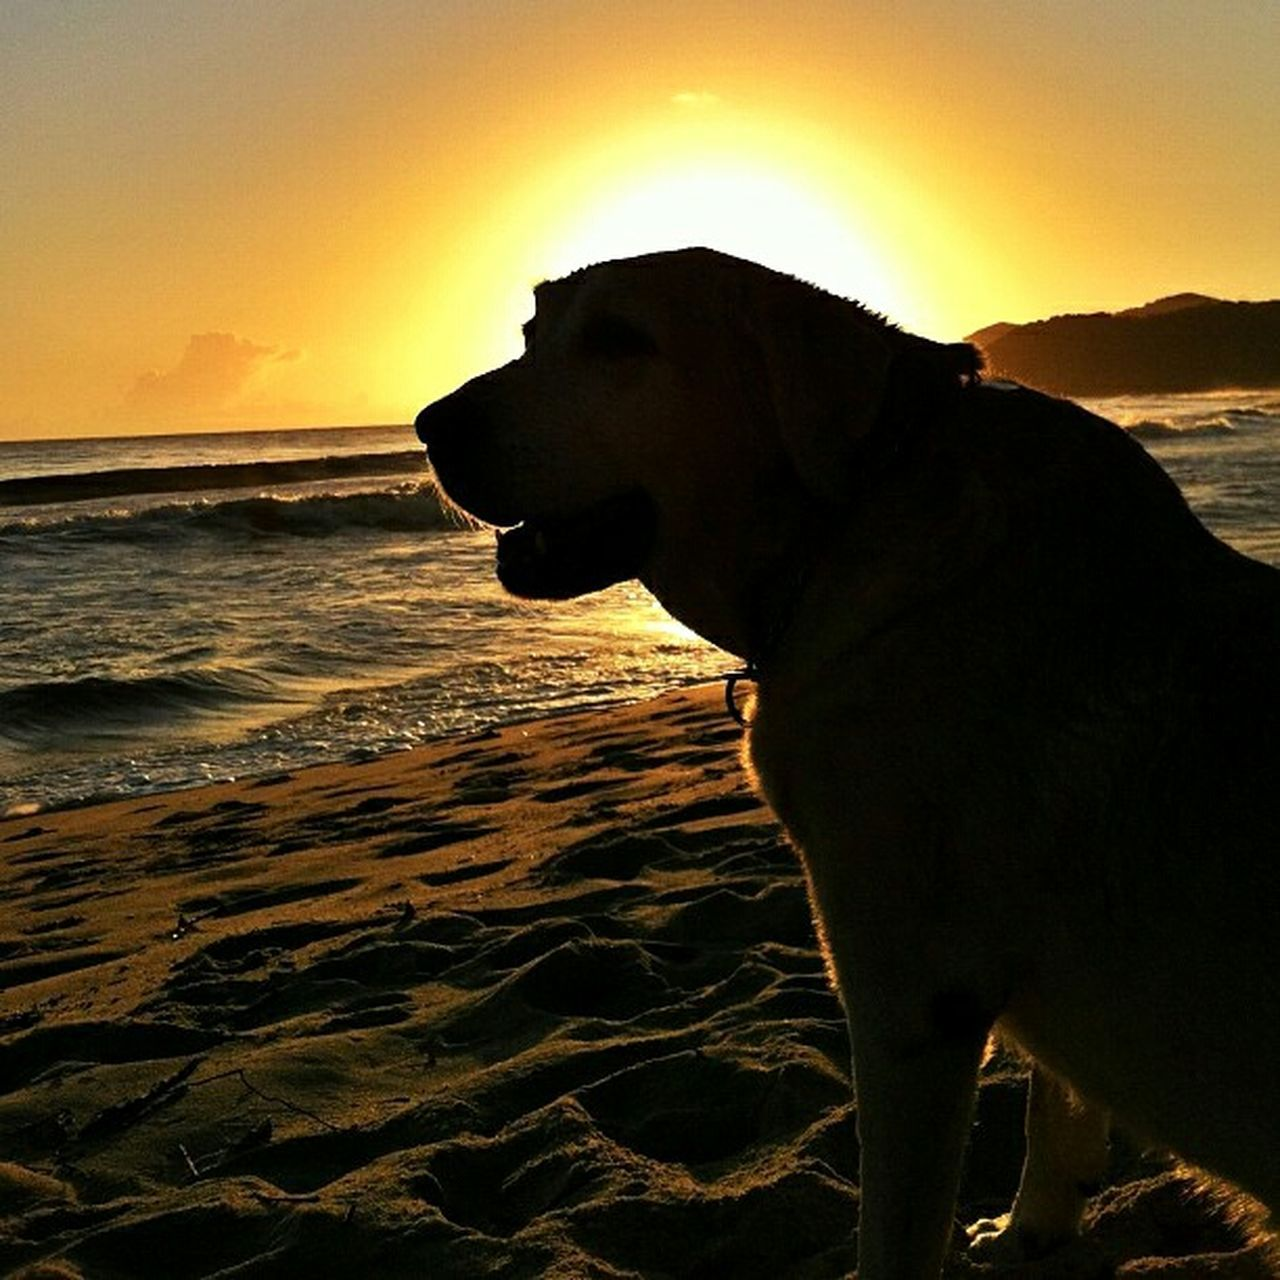 Summer Dogs Labrador Retriever Beach Sunset Silhouettes Dog Warm Contemplating Summertime